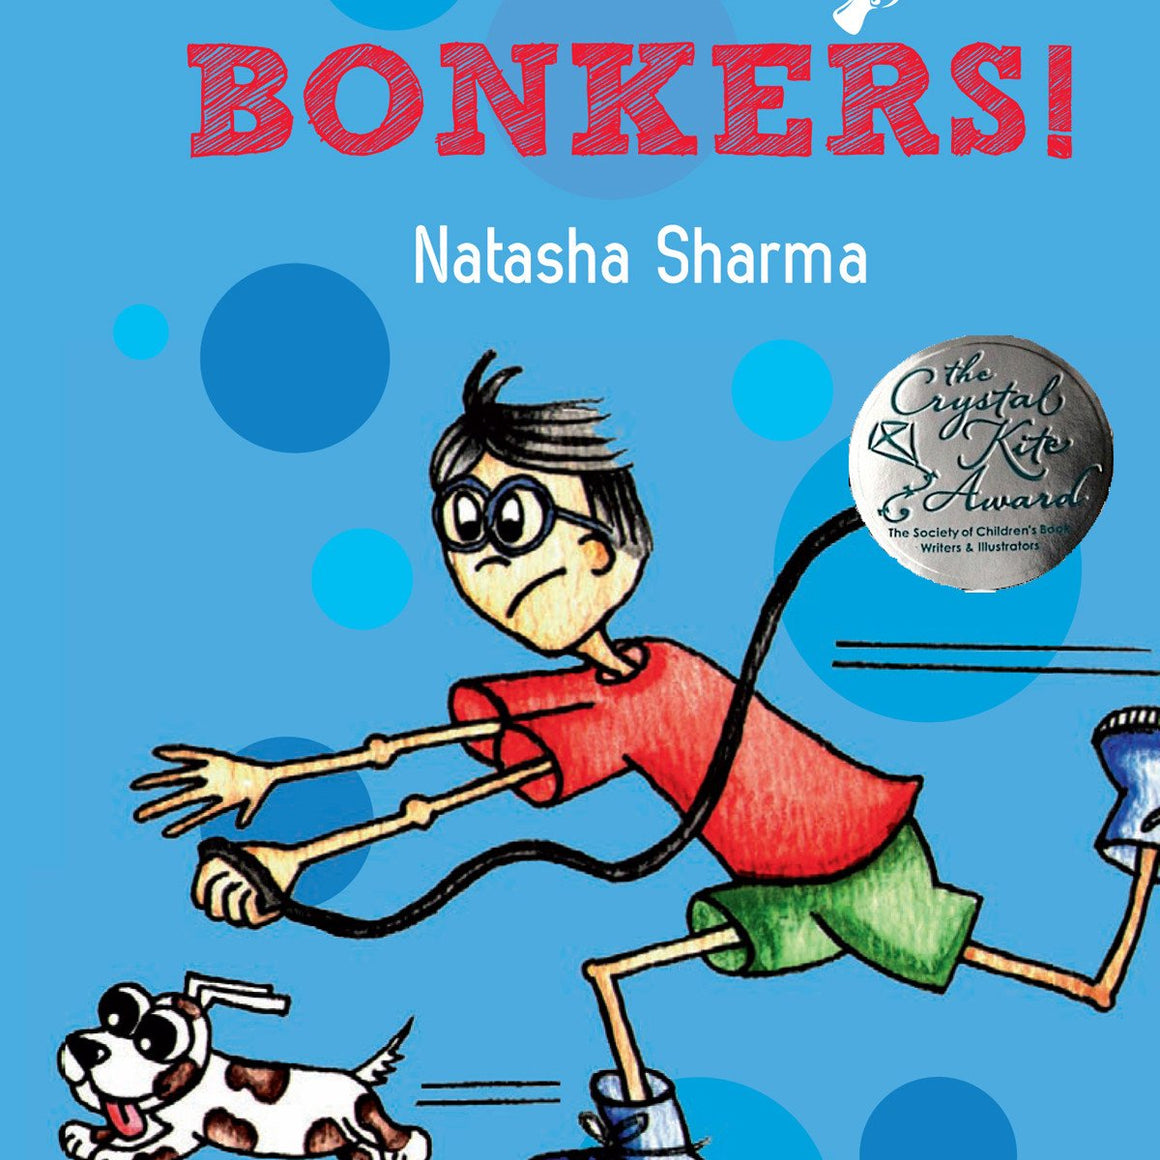 Buy Bonkers children's & kids story book online by Natasha Sharma - Shumee